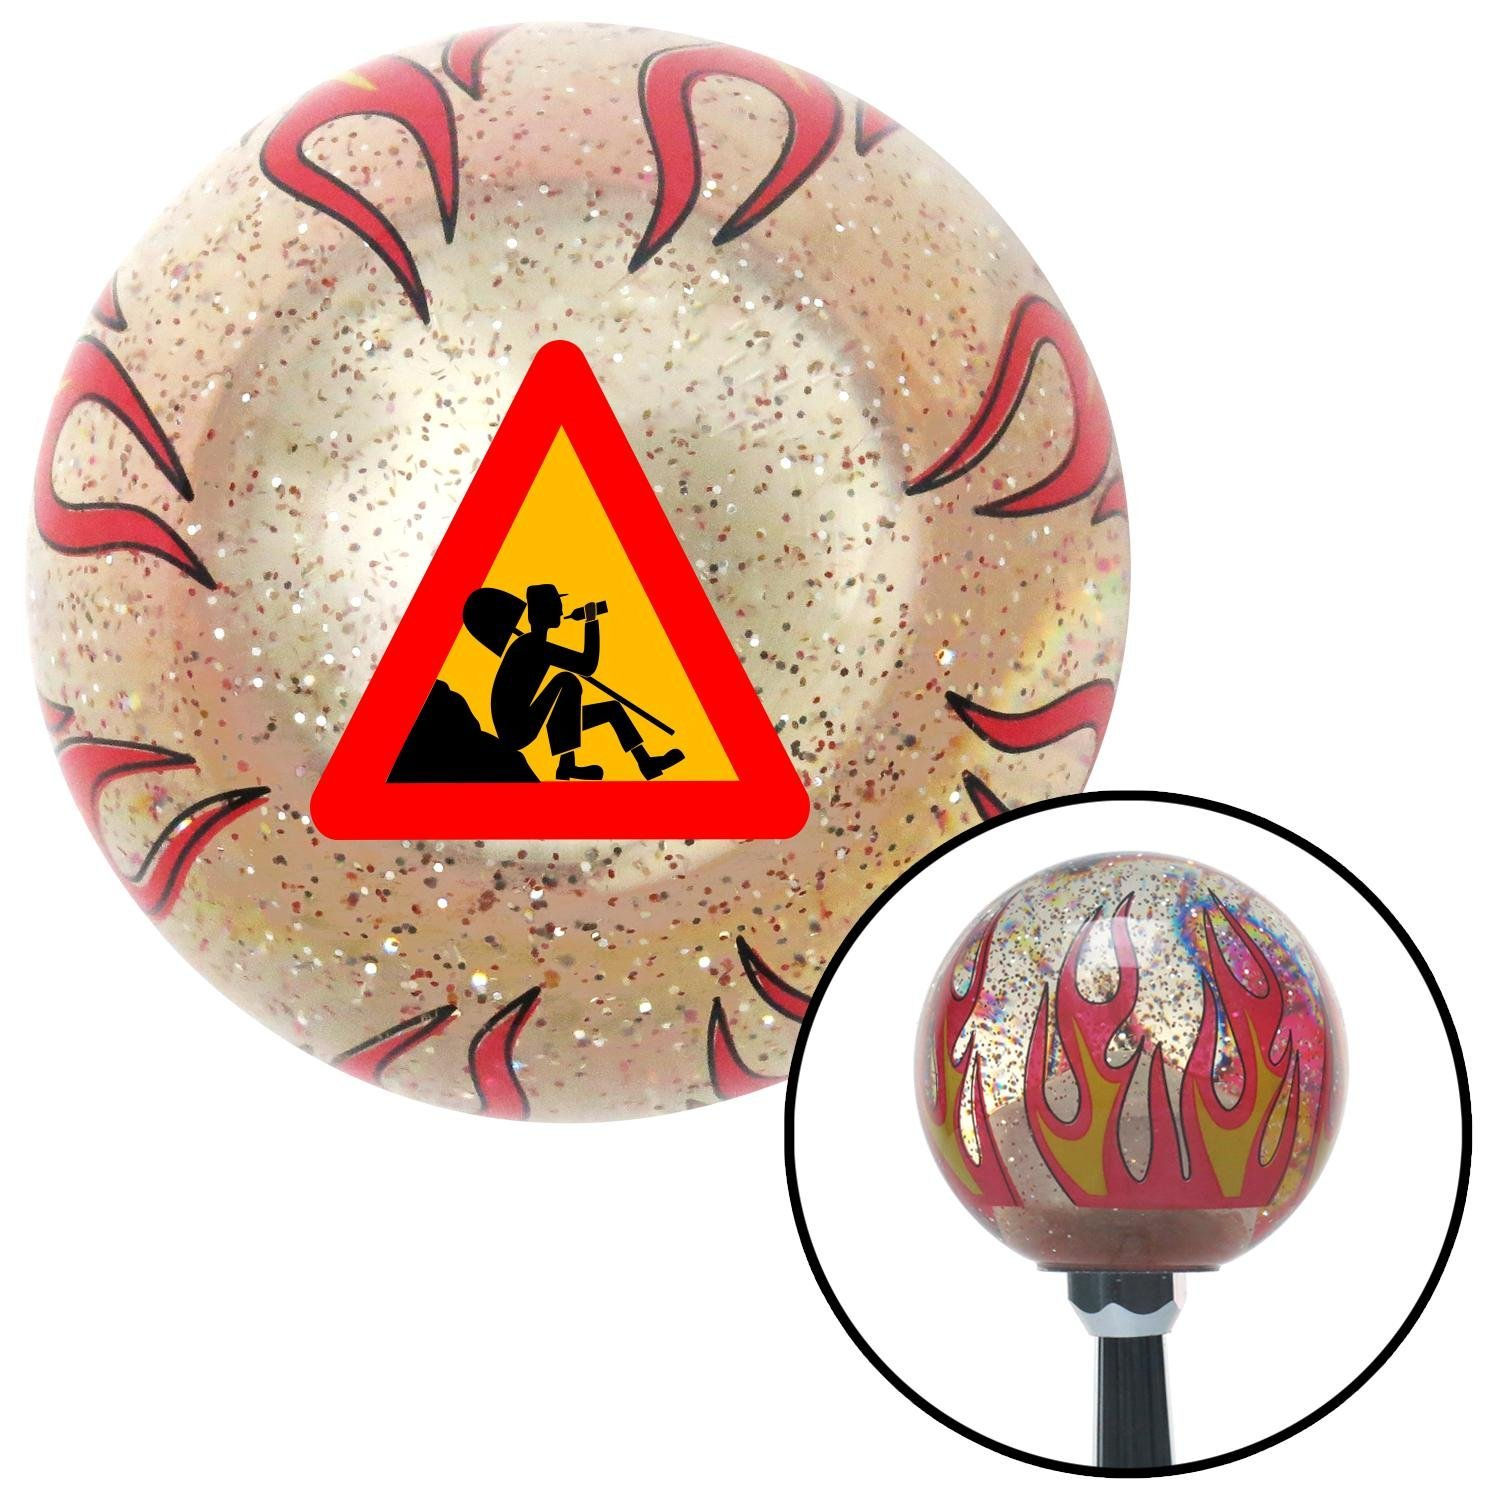 American Shifter 235295 Clear Flame Metal Flake Shift Knob with M16 x 1.5 Insert Men at Break